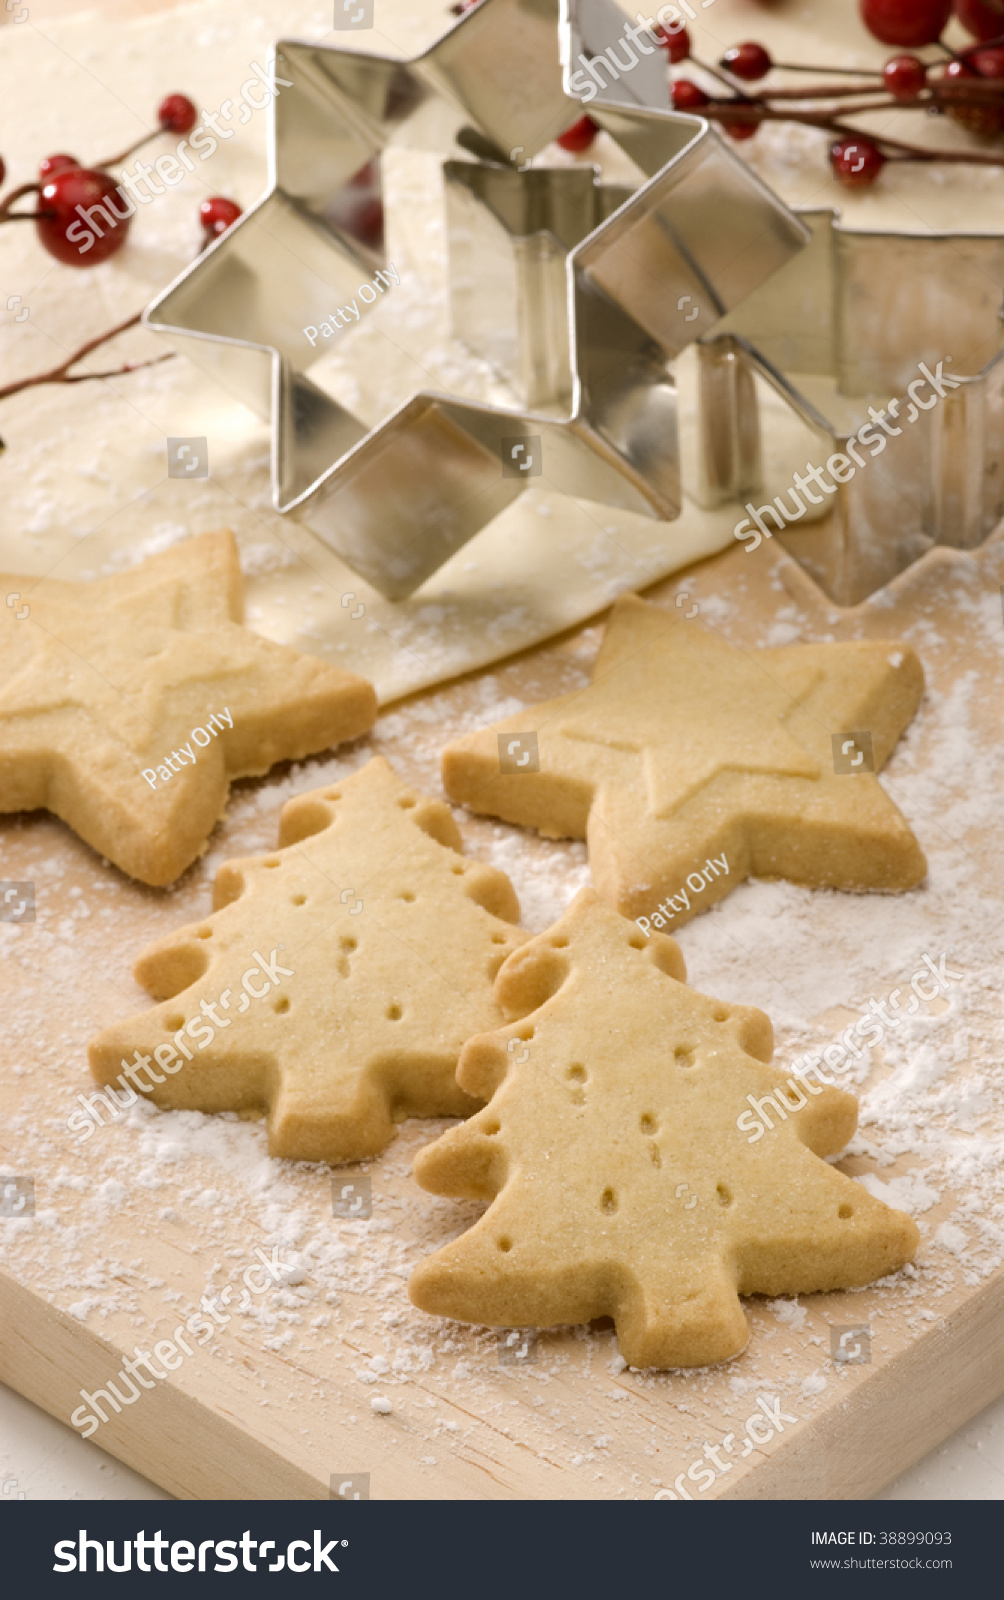 Assorted Christmas Biscuits Homemade Cookies Cookie Stock Photo